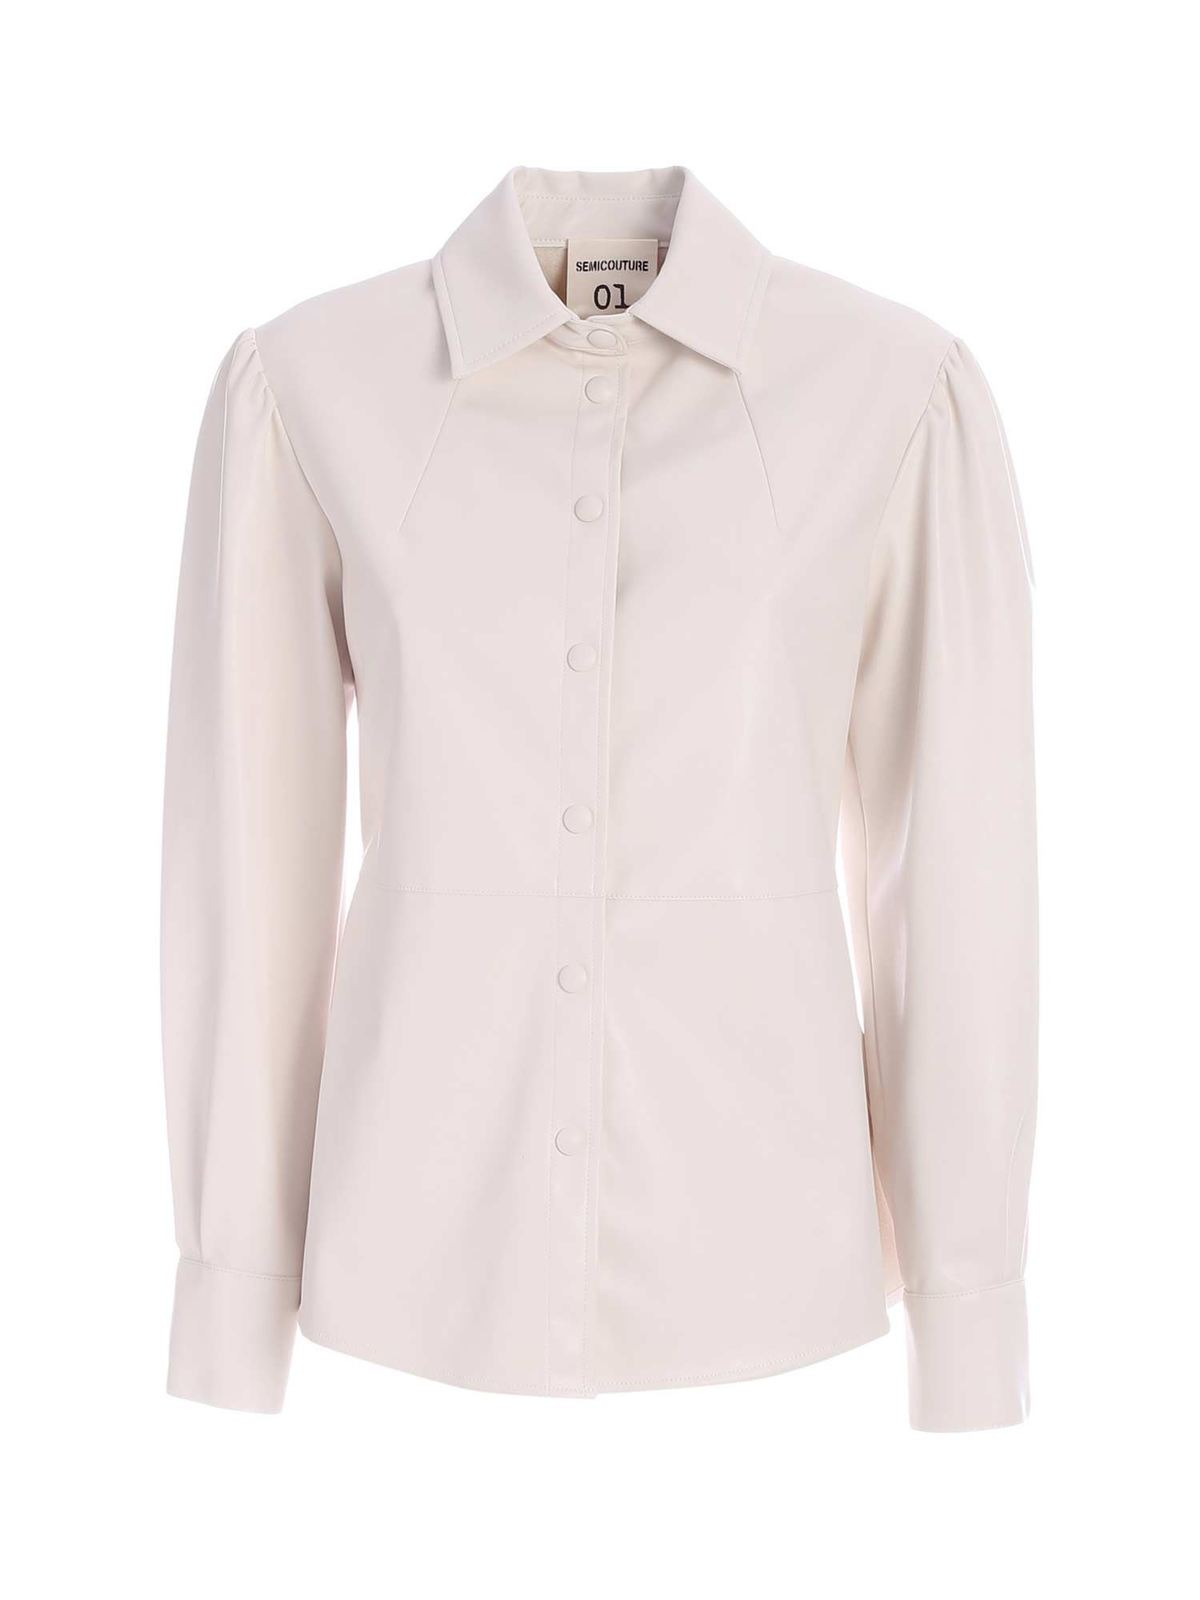 Semicouture ISABELLE SHIRT IN IVORY COLOR